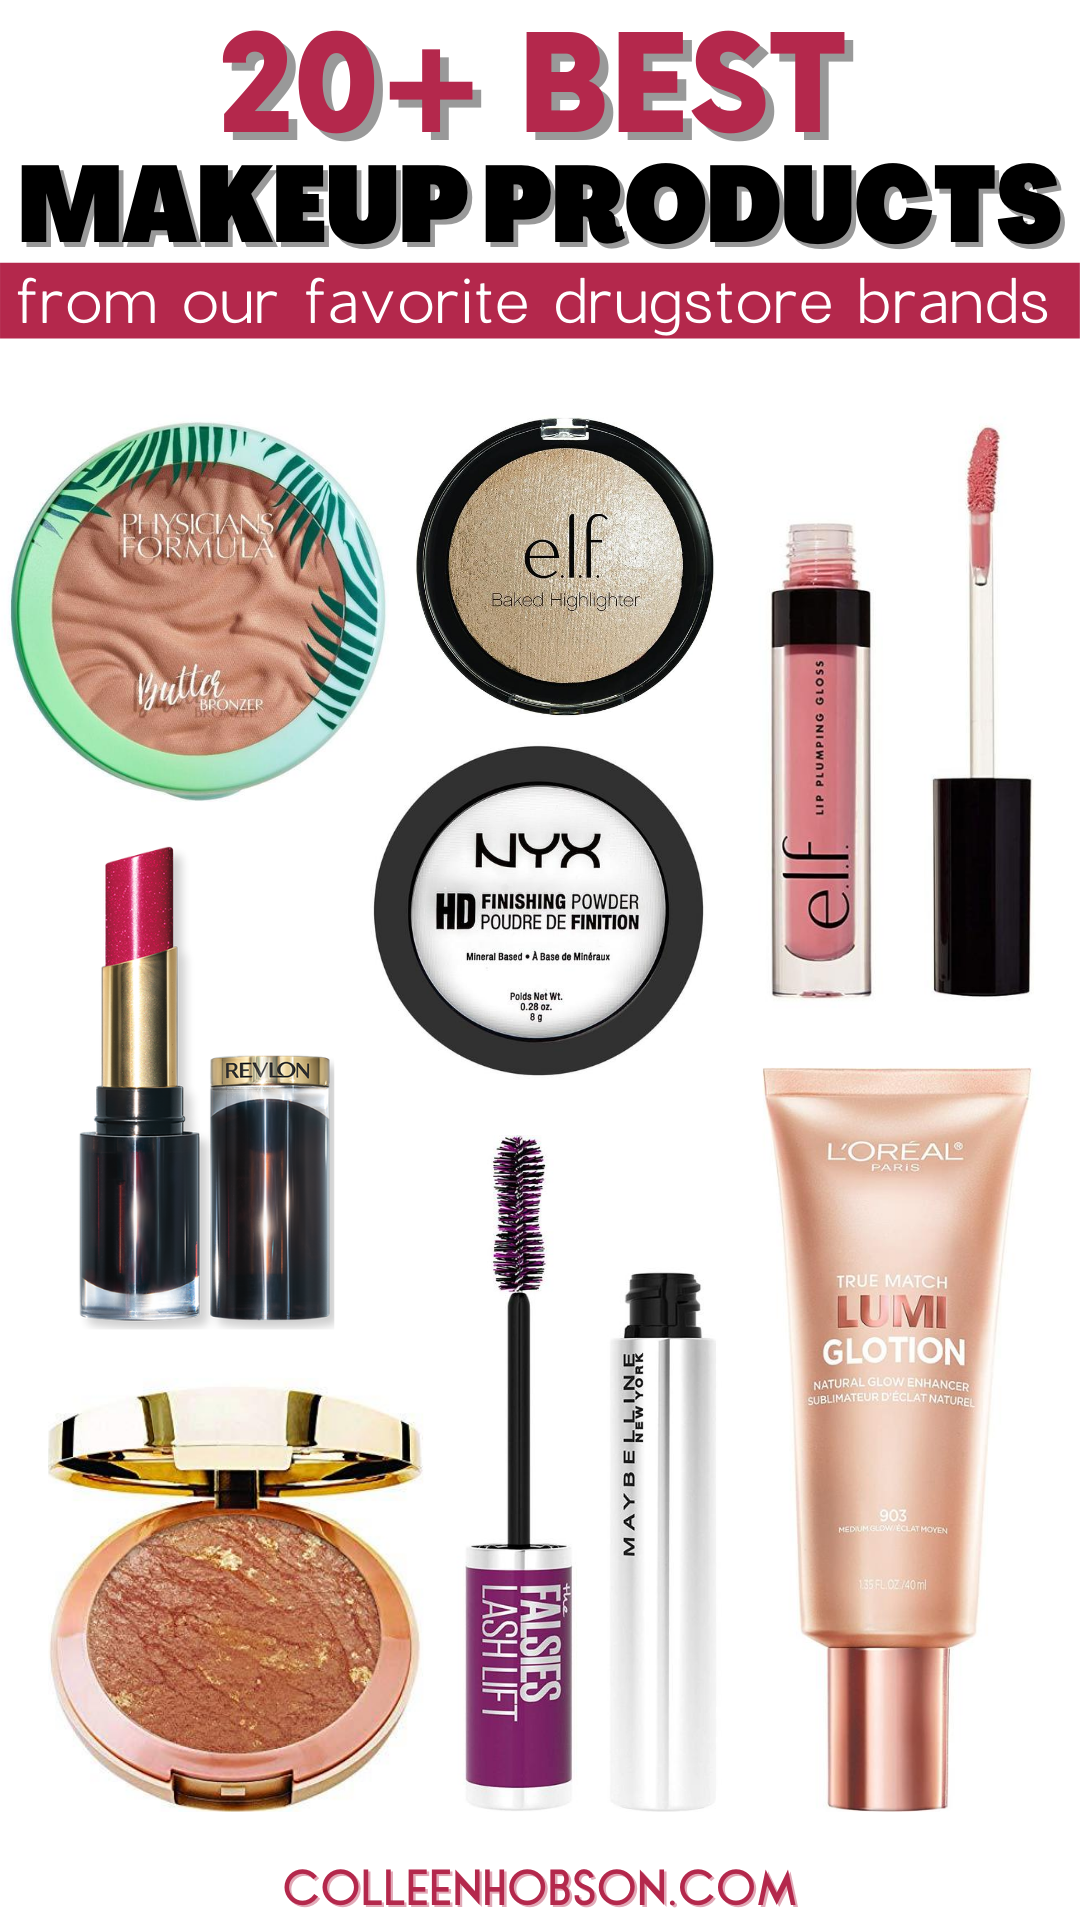 20 Best Makeup Picks From Our Favorite Drugstore Brands Colleen Hobson In 2020 Best Makeup Products Beauty Products Drugstore Drugstore Makeup